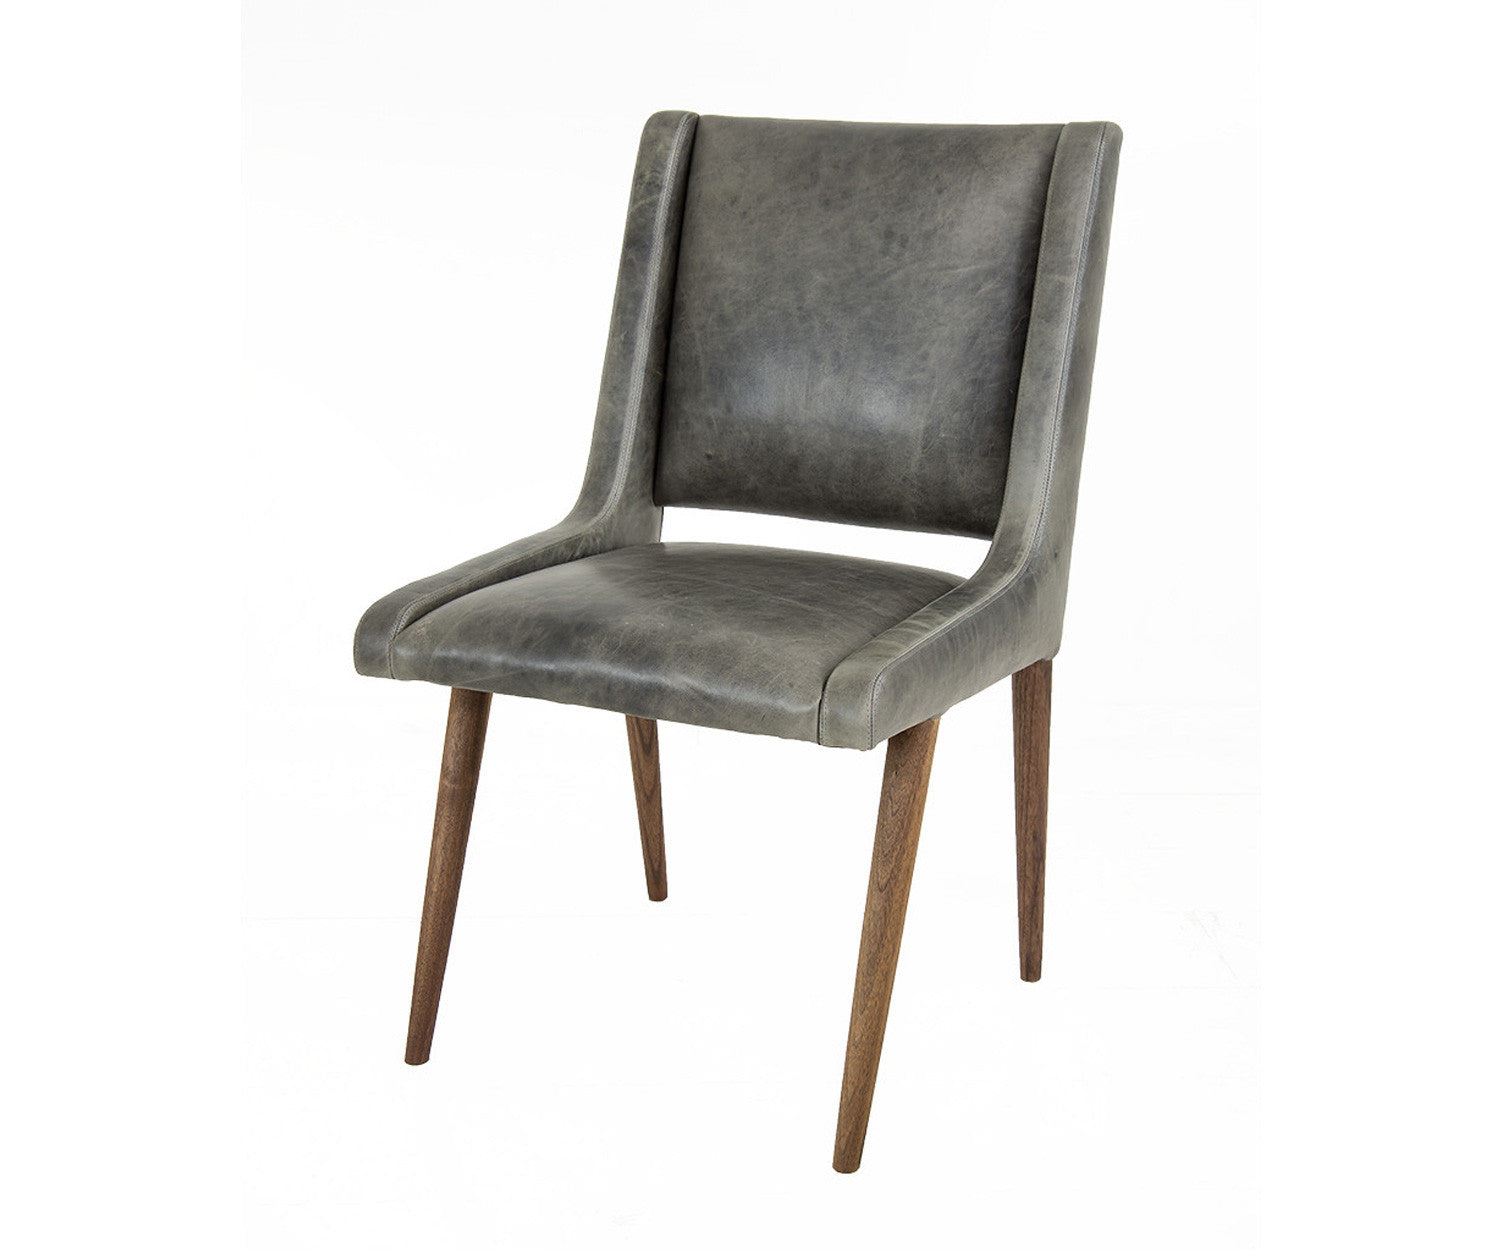 mid century dining chair in distressed grey leather modshop. Black Bedroom Furniture Sets. Home Design Ideas